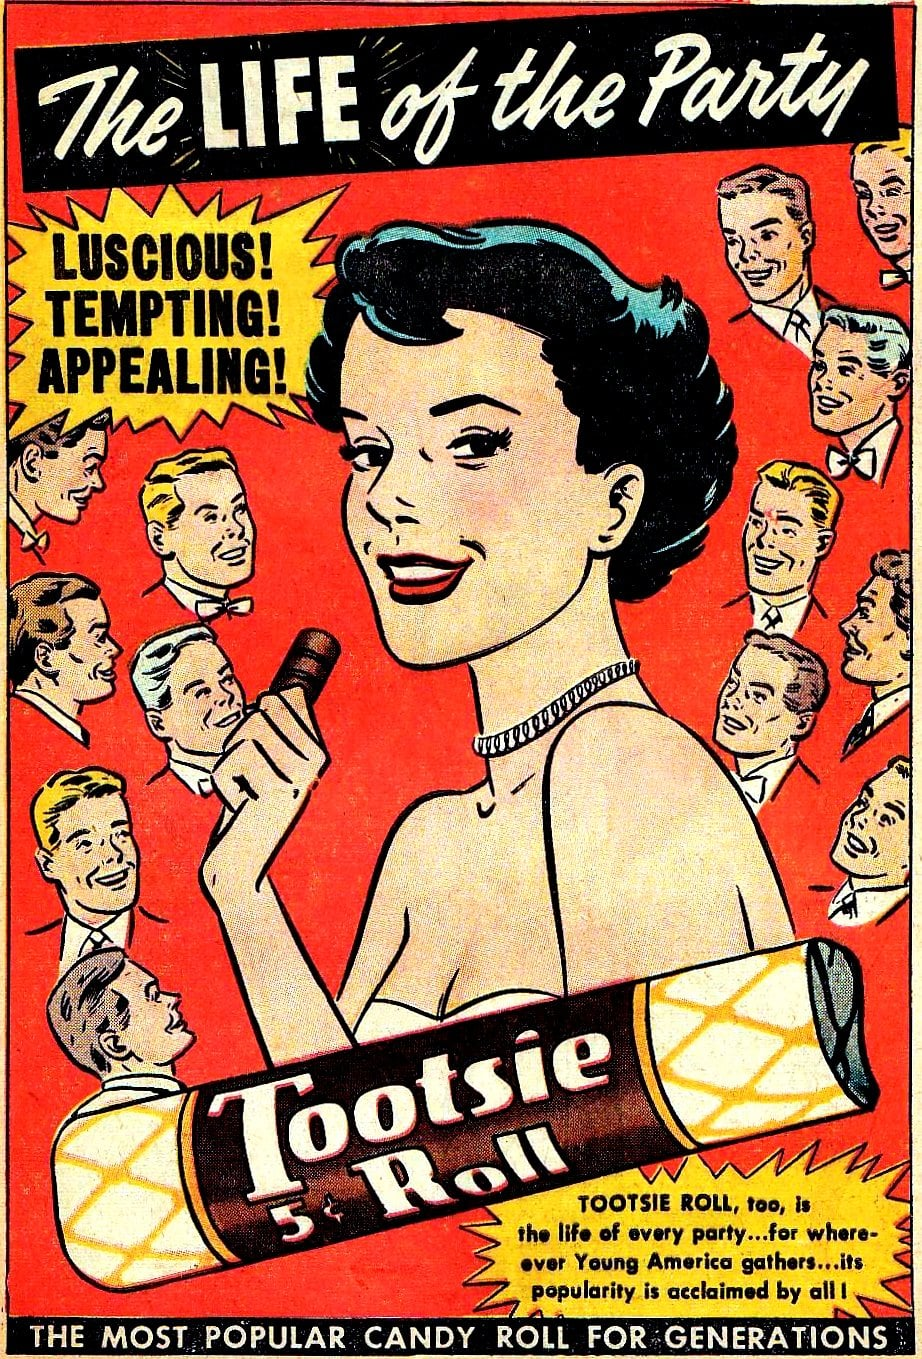 Tootsie Roll the life of the party ad (c1950s)